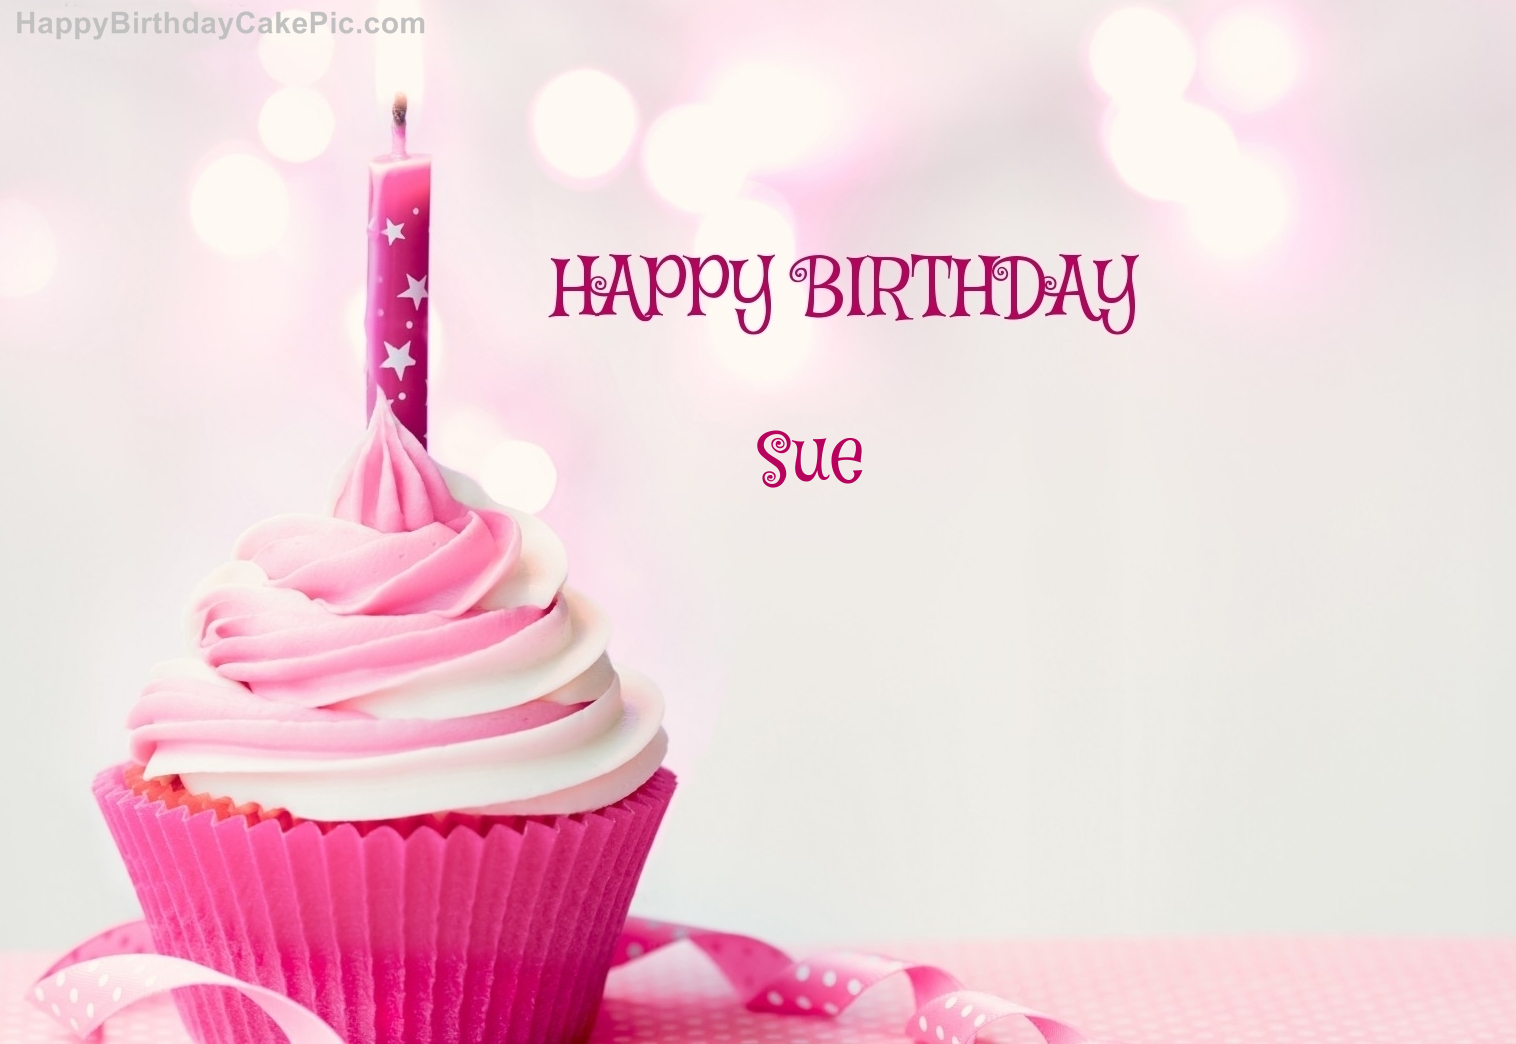 Happy Birthday Cupcake Candle Pink Cake For Sue